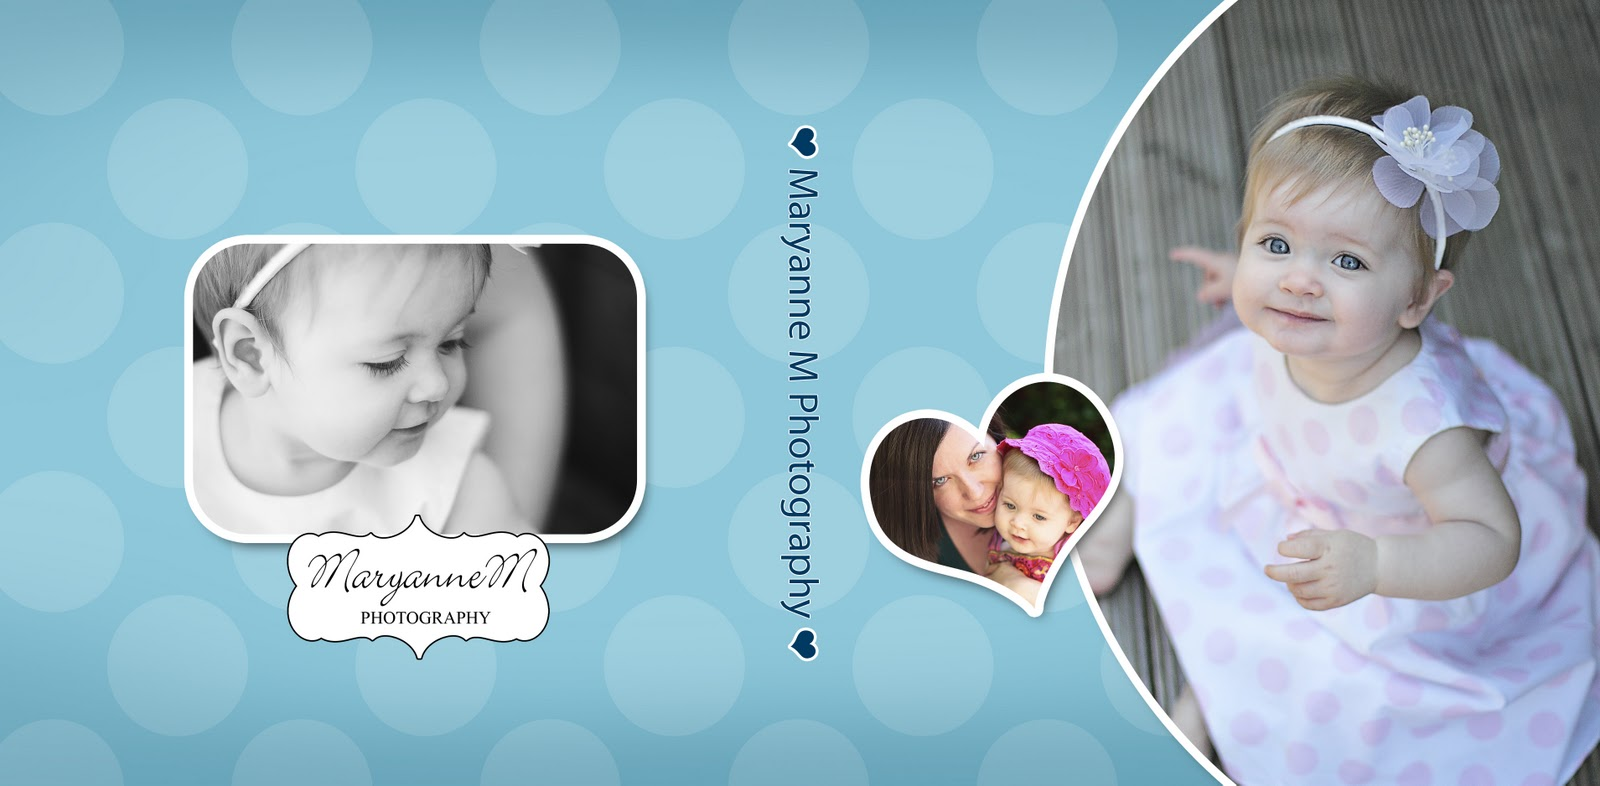 birthday album design ; birthday%2520photo%2520album%2520design%2520templates%2520;%2520OhBaby_CDCase_Single